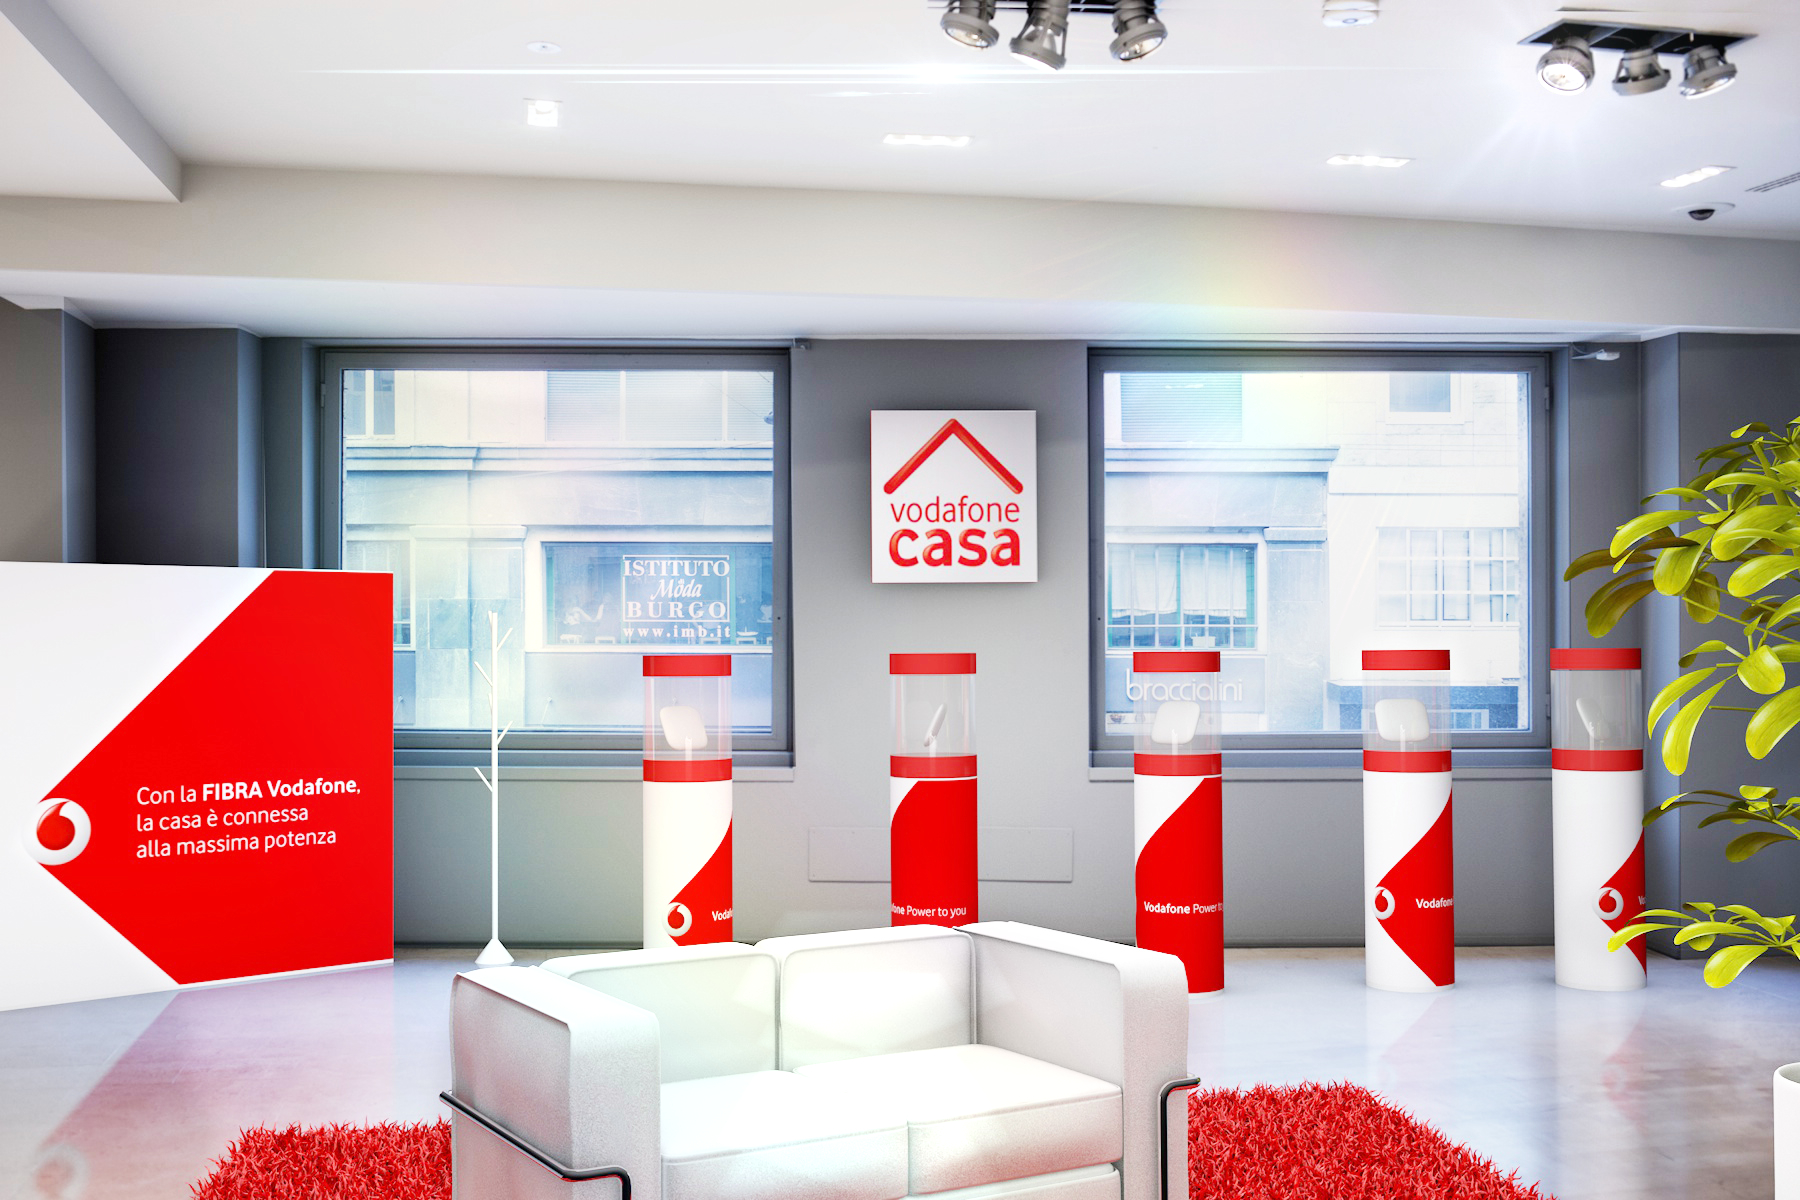 Vodafone Casa / product showcase